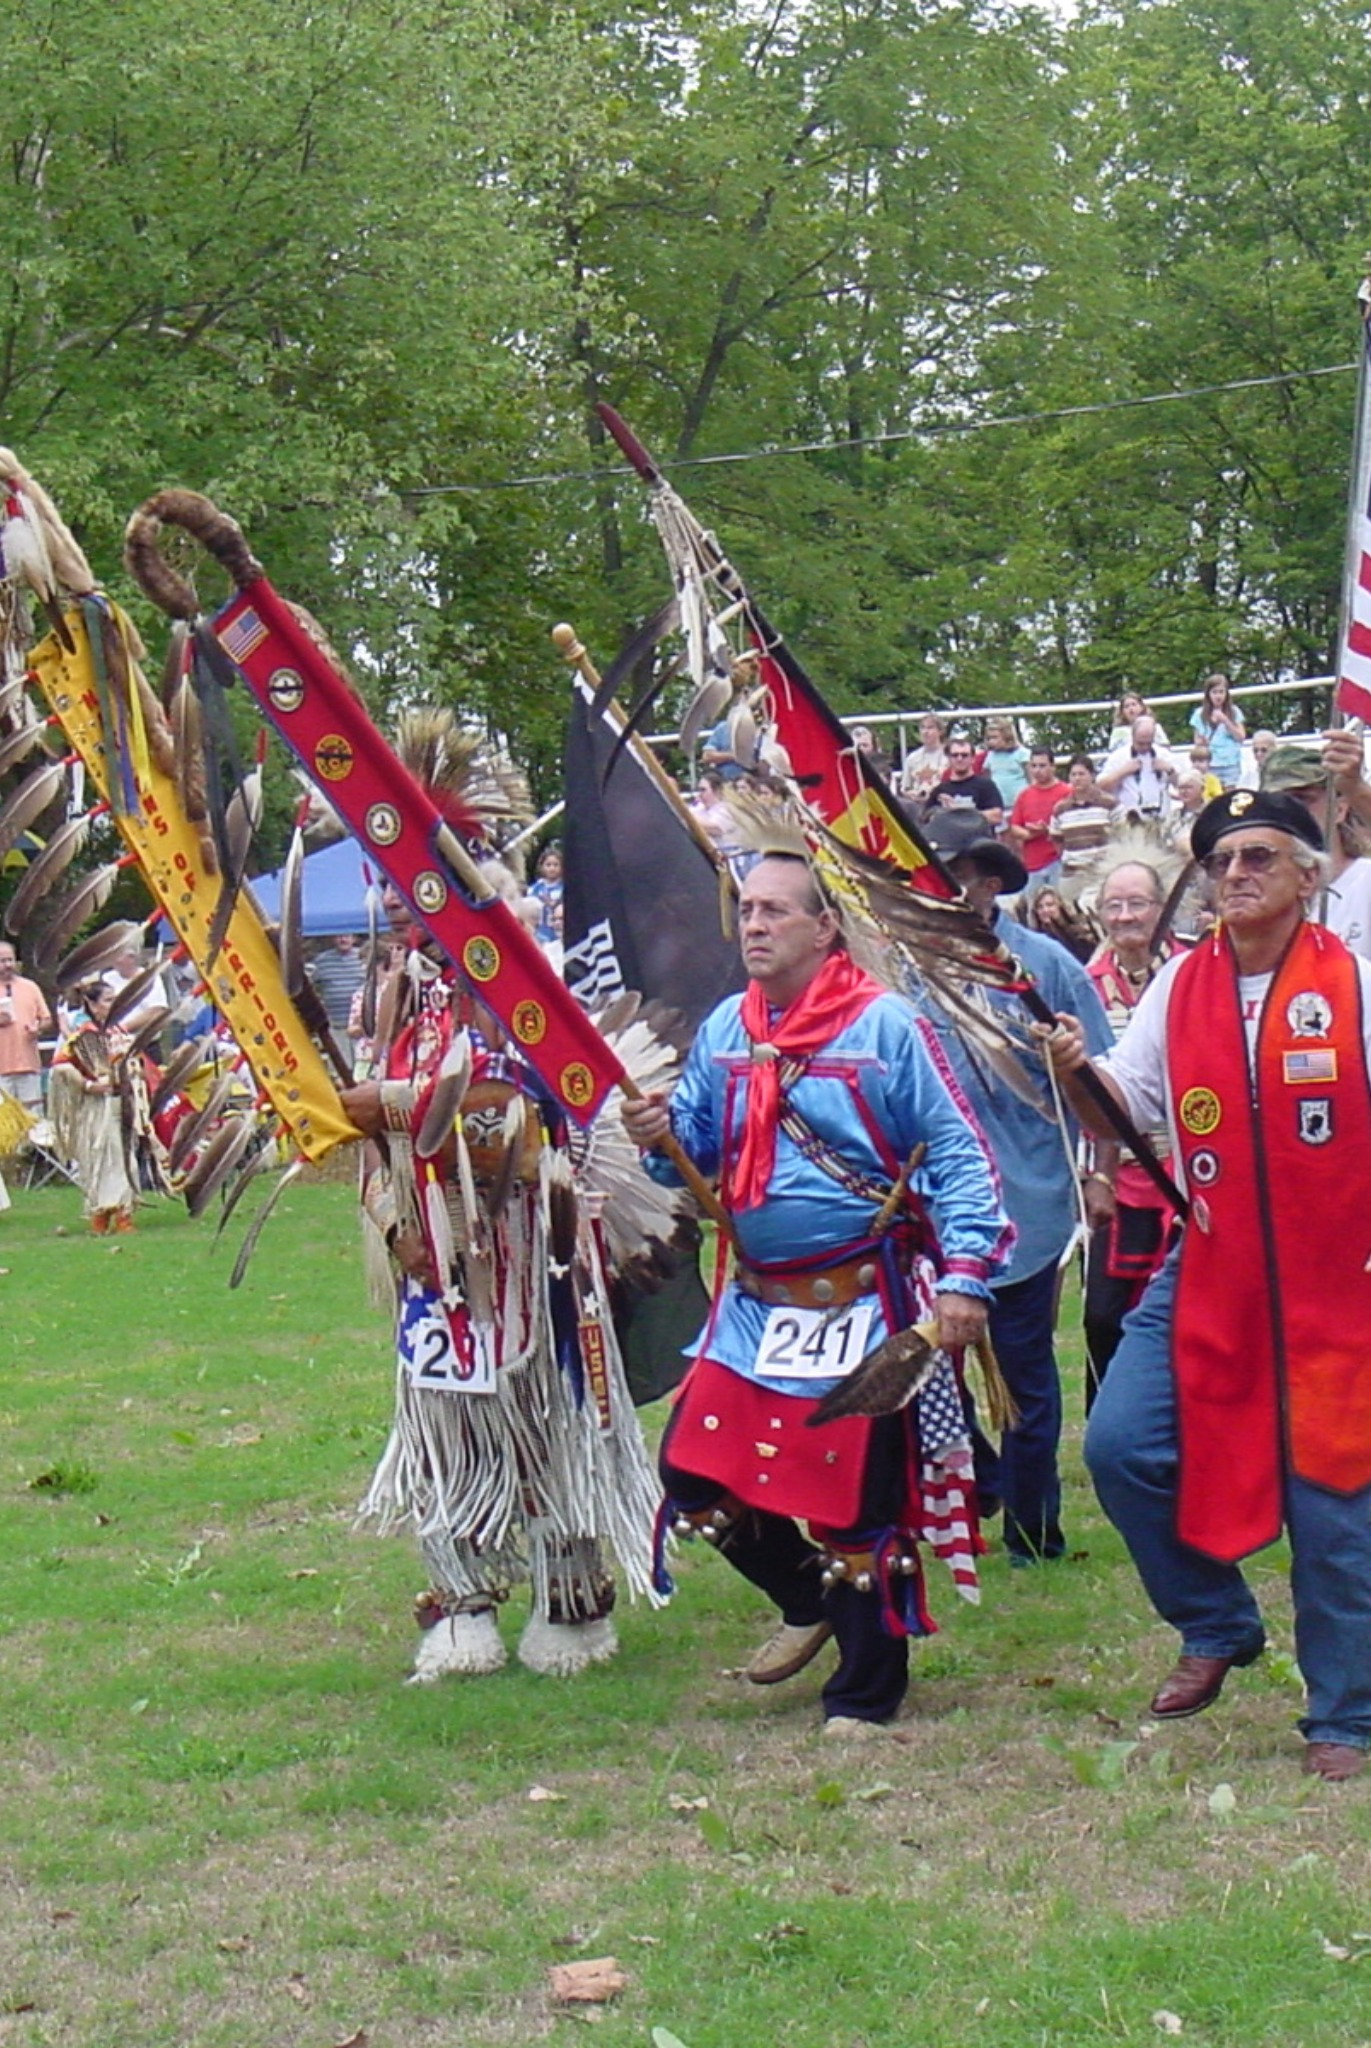 Keith Little Badger participates in Powwow Grand Entry with Veterans